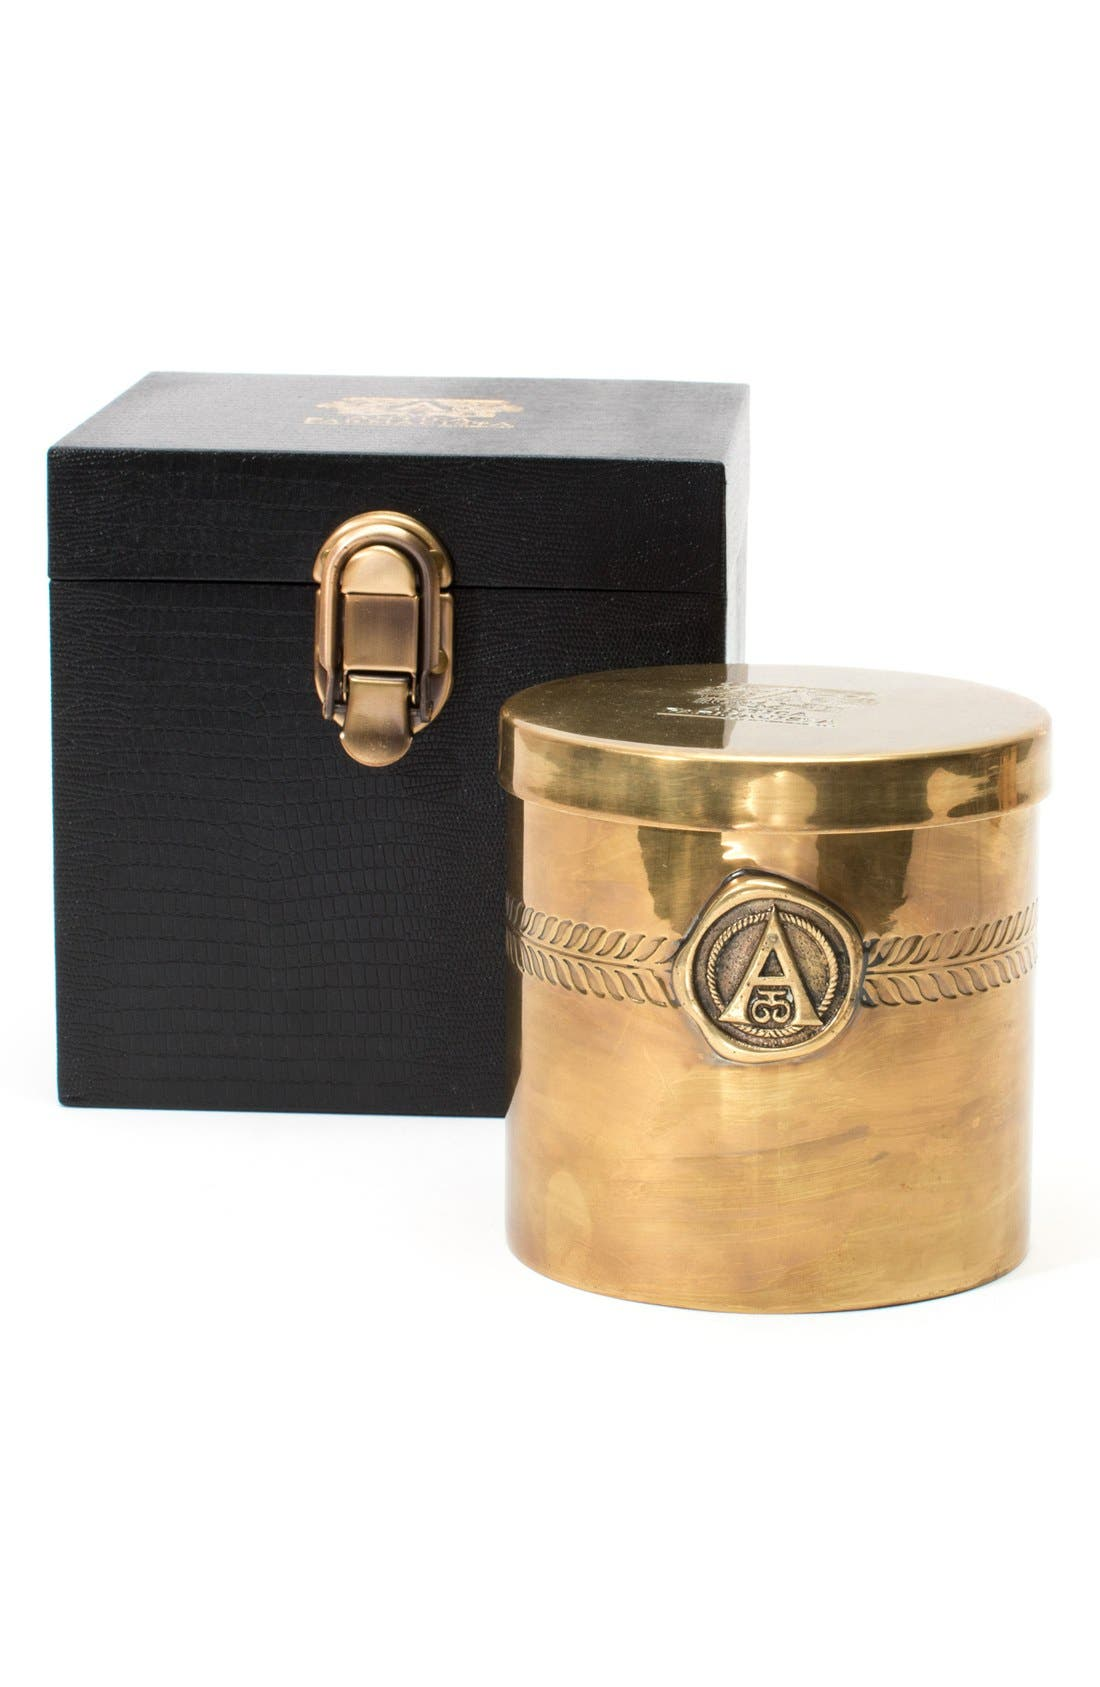 Antica Farmacista Champagne Black Label Three-Wick Brass Candle (Limited Edition)